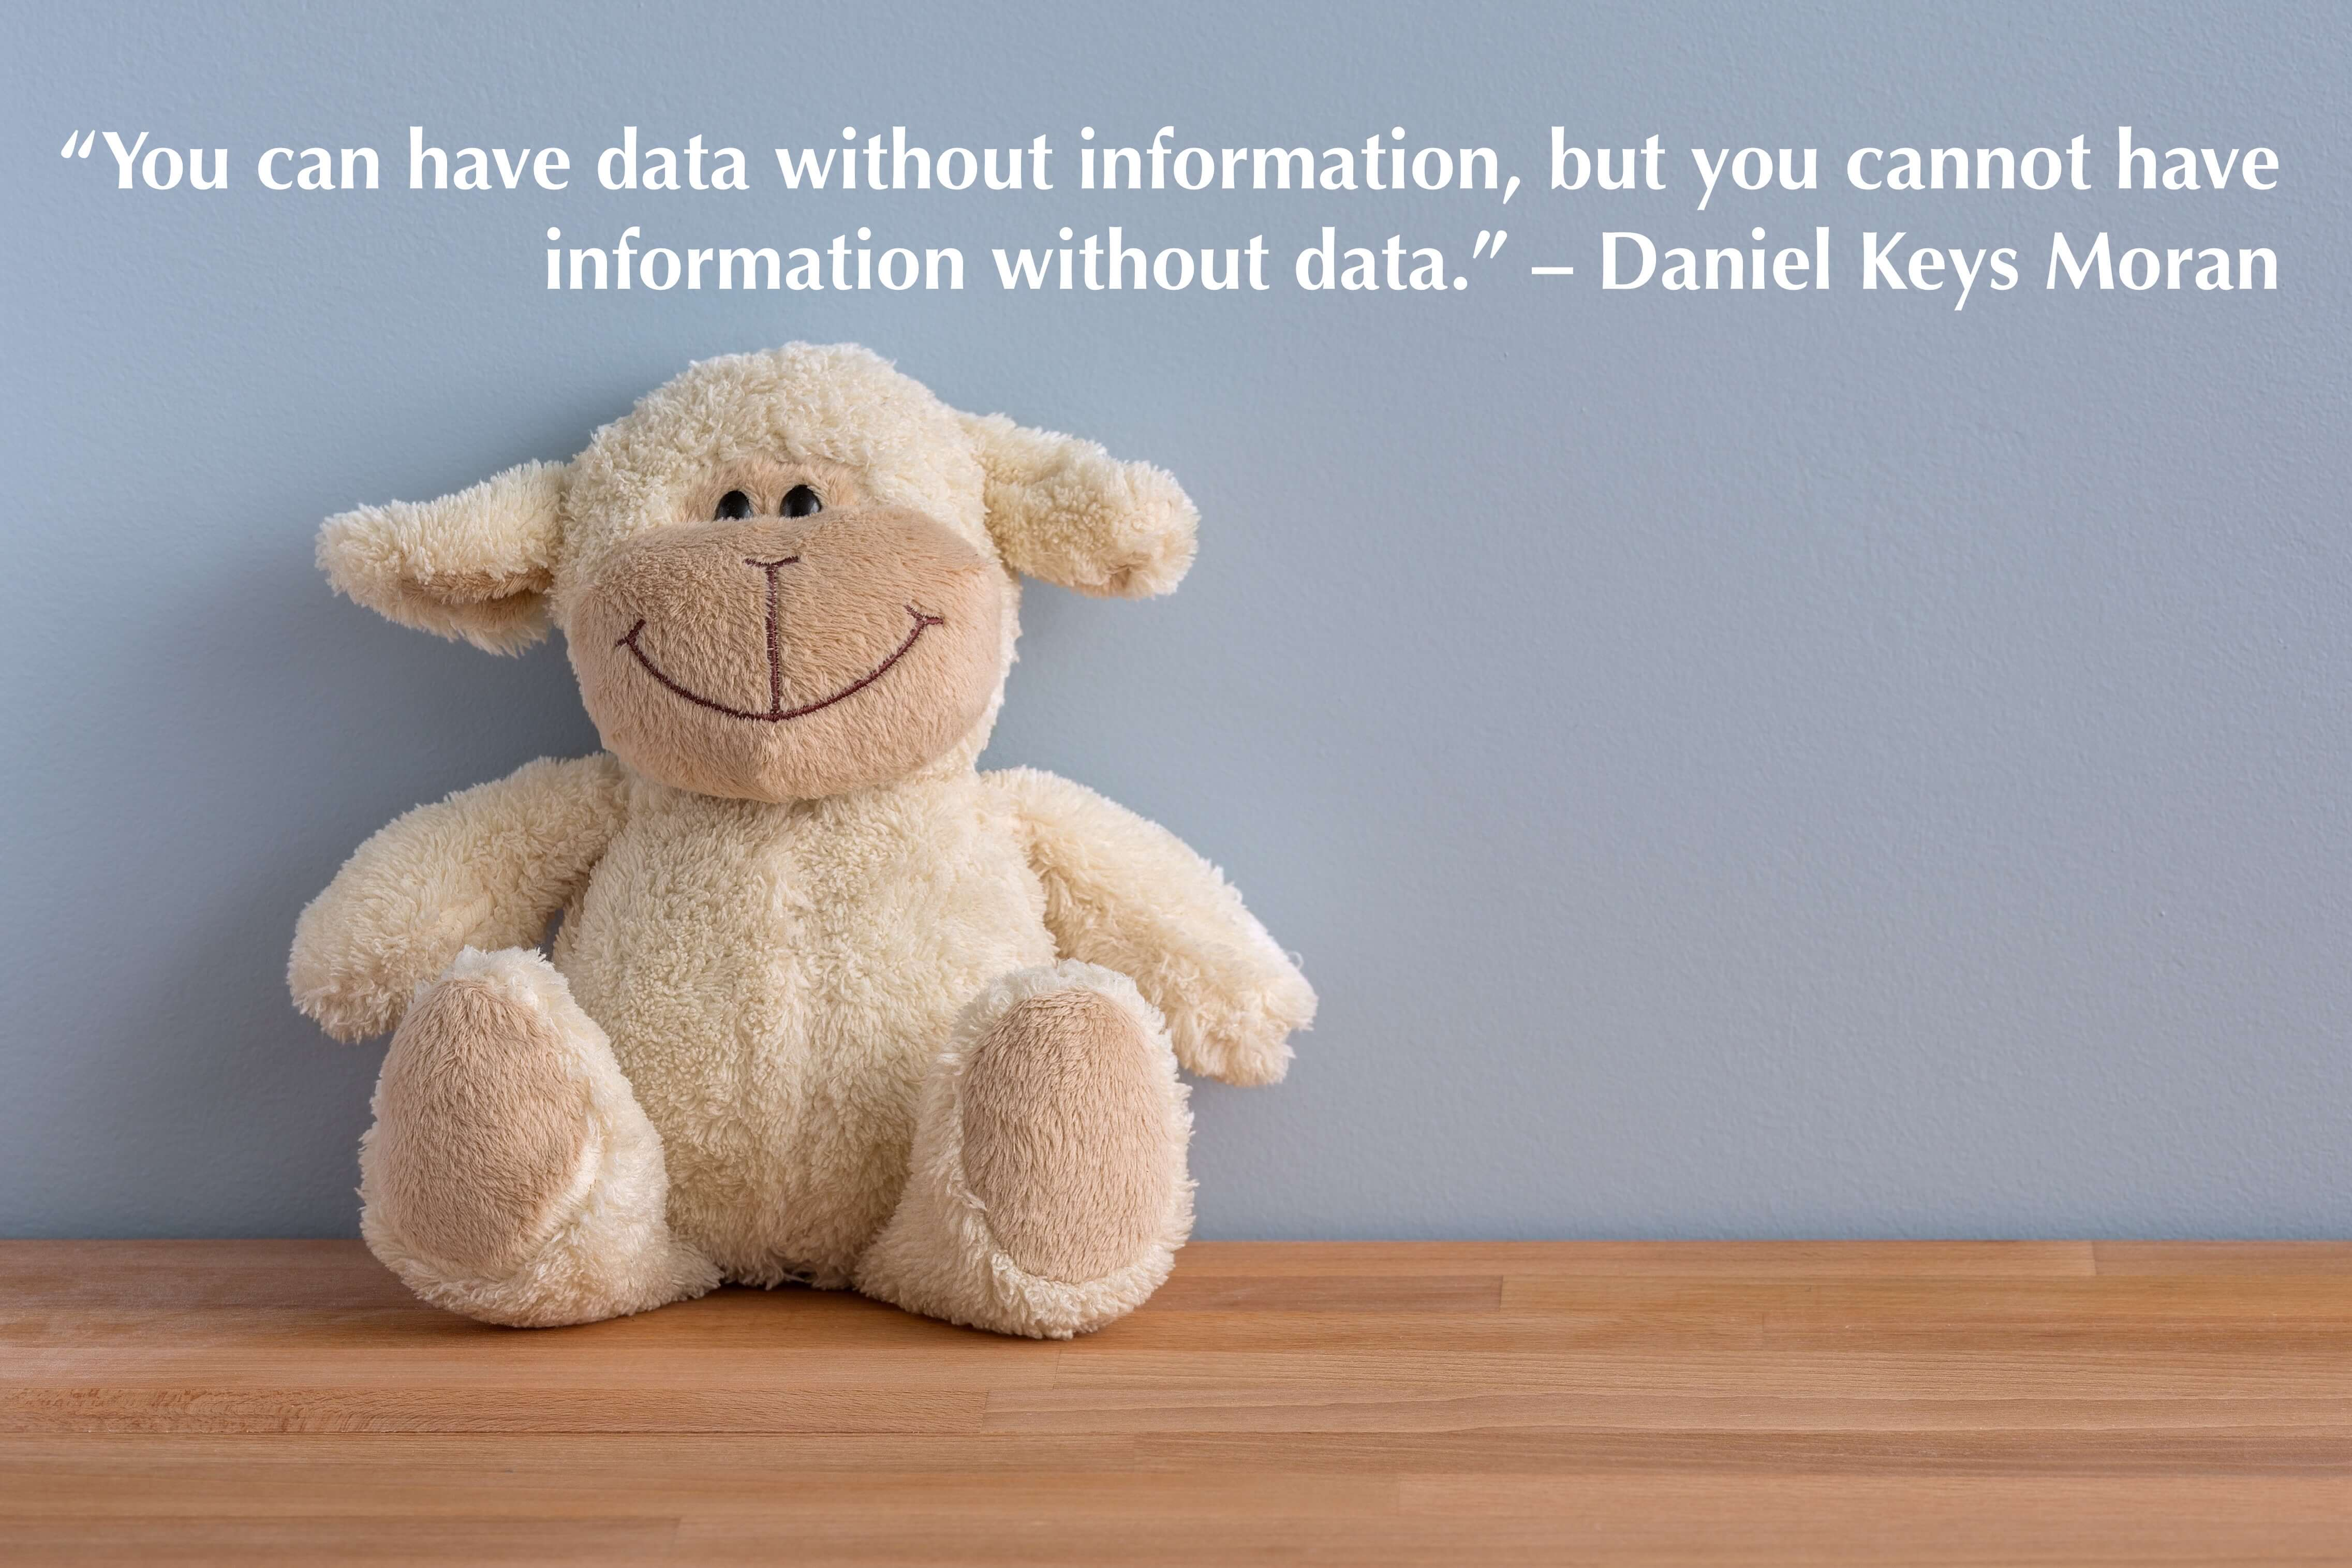 """You can have data without information, but you cannot have information without data."" – Daniel Keys Moran"